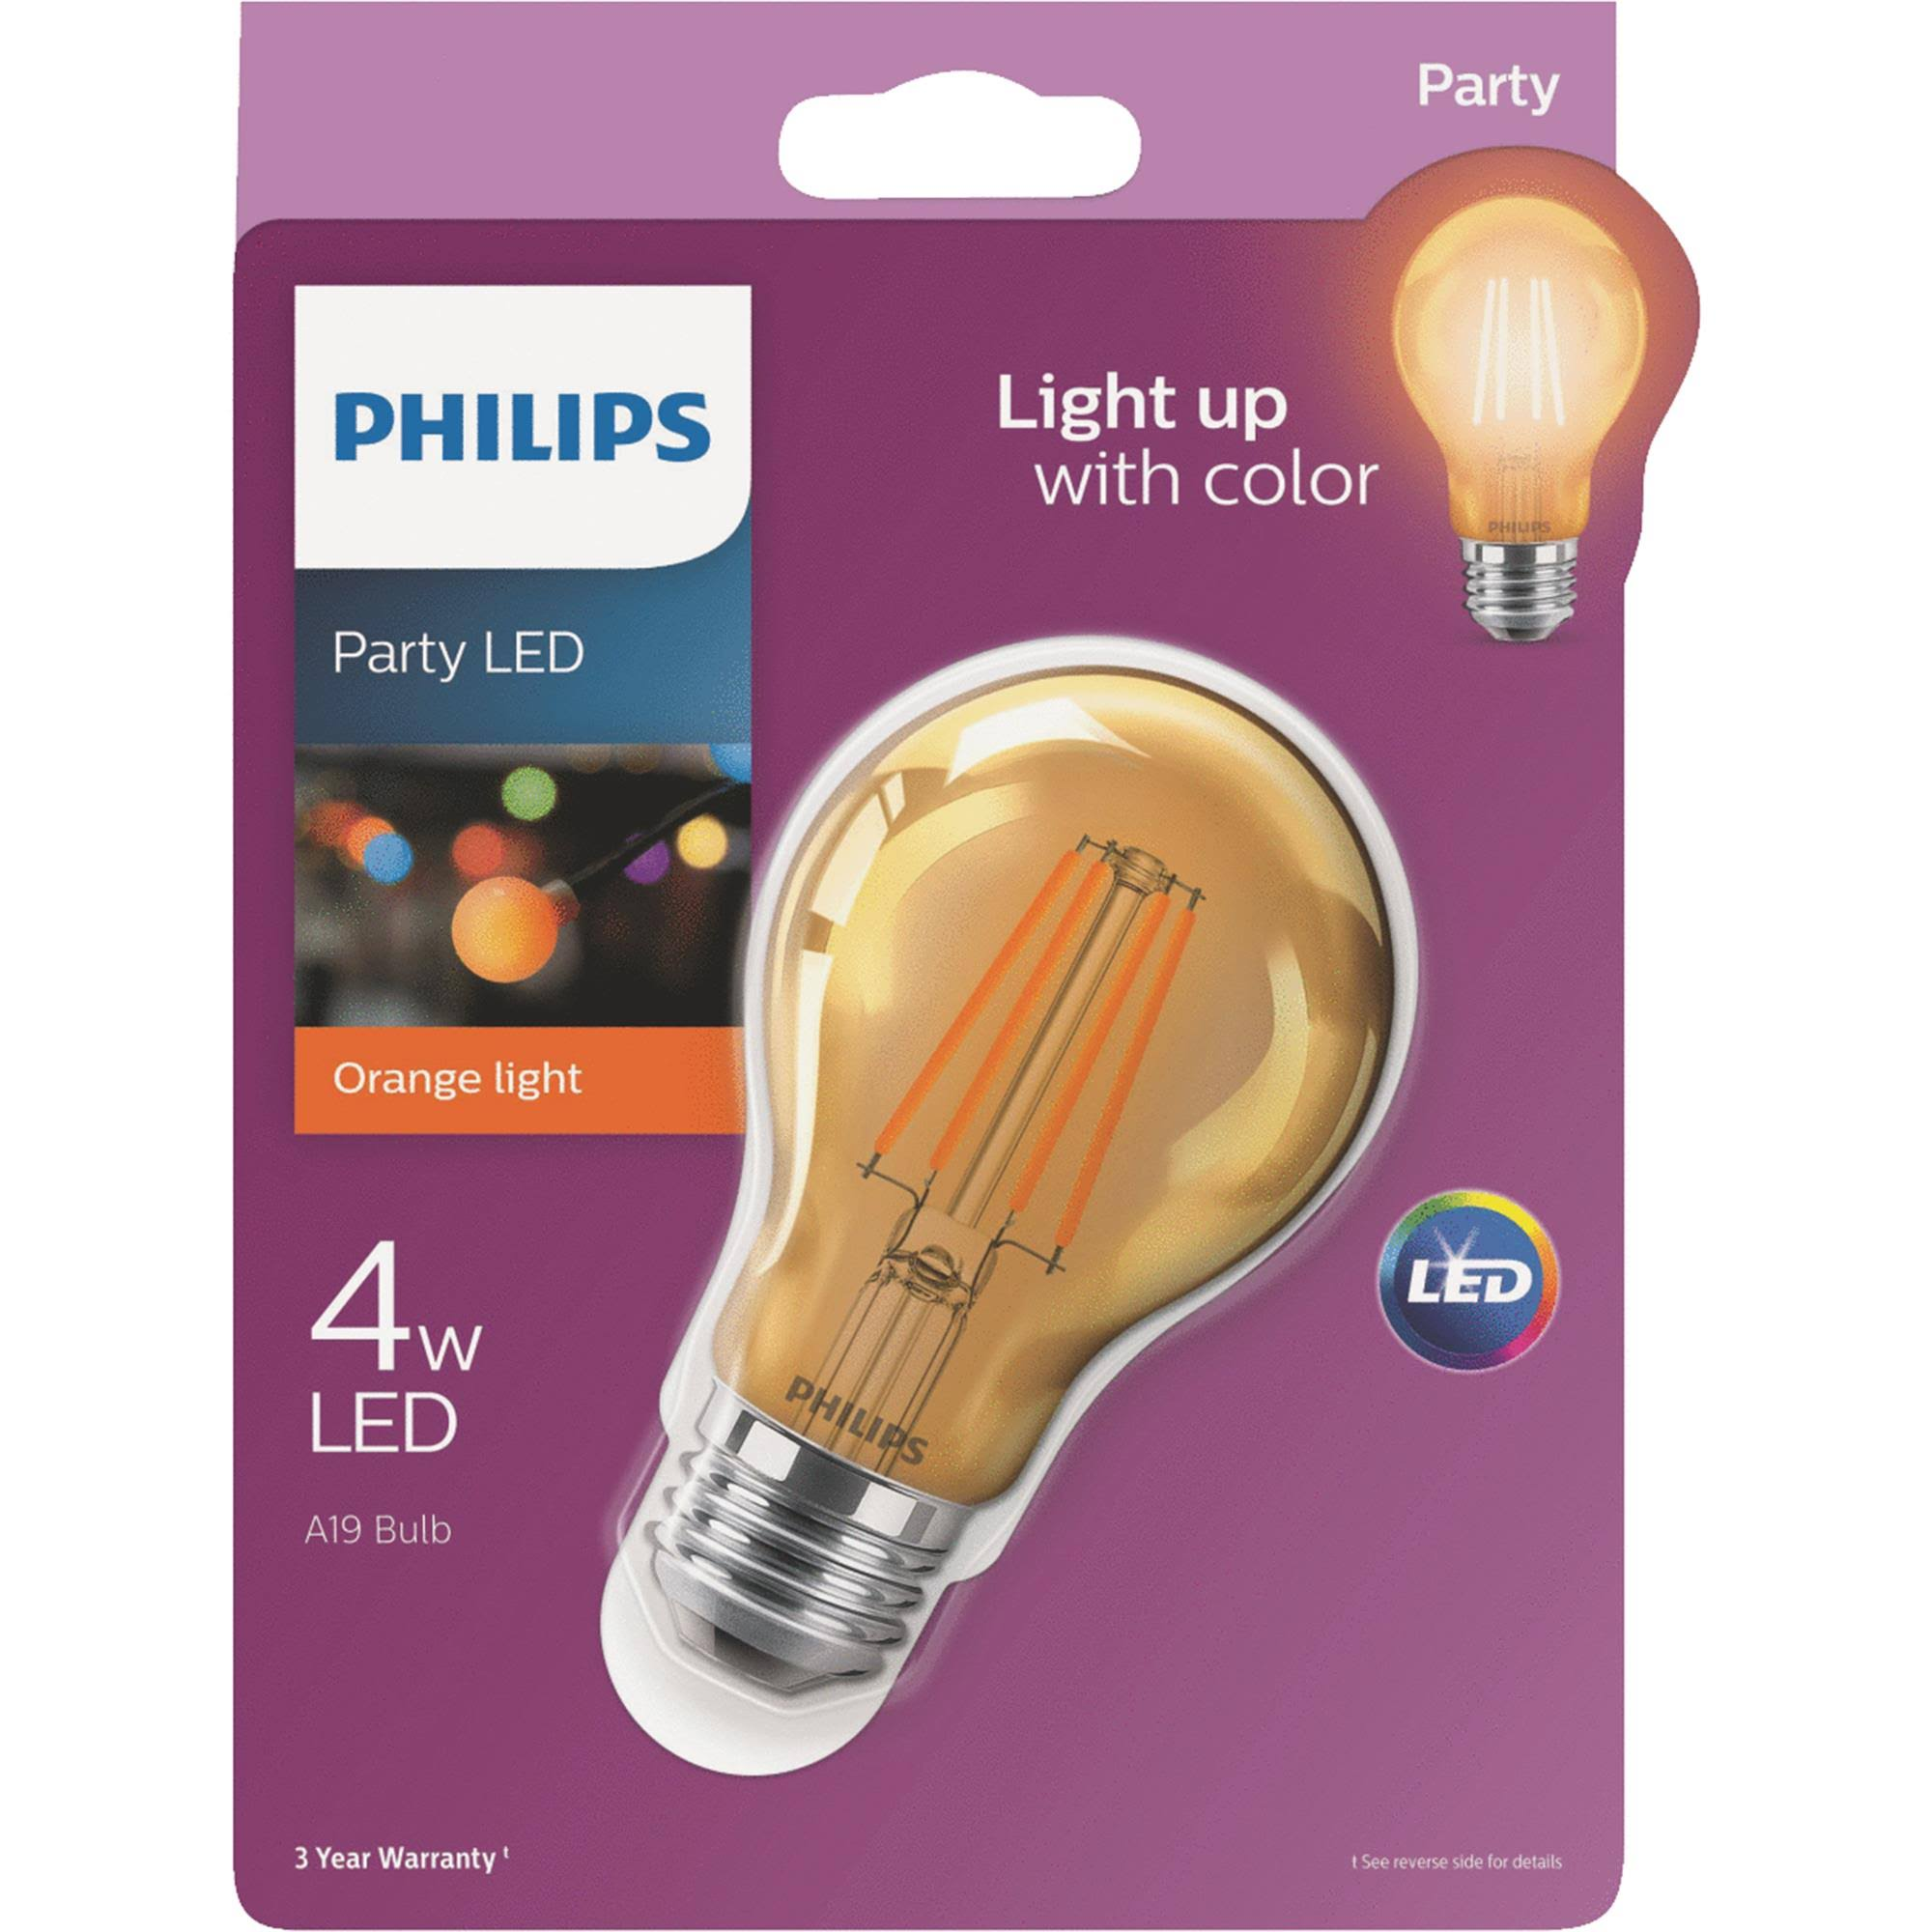 Philips A19 Medium Indoor Outdoor LED Decorative Party Light Bulb - Red, 8W